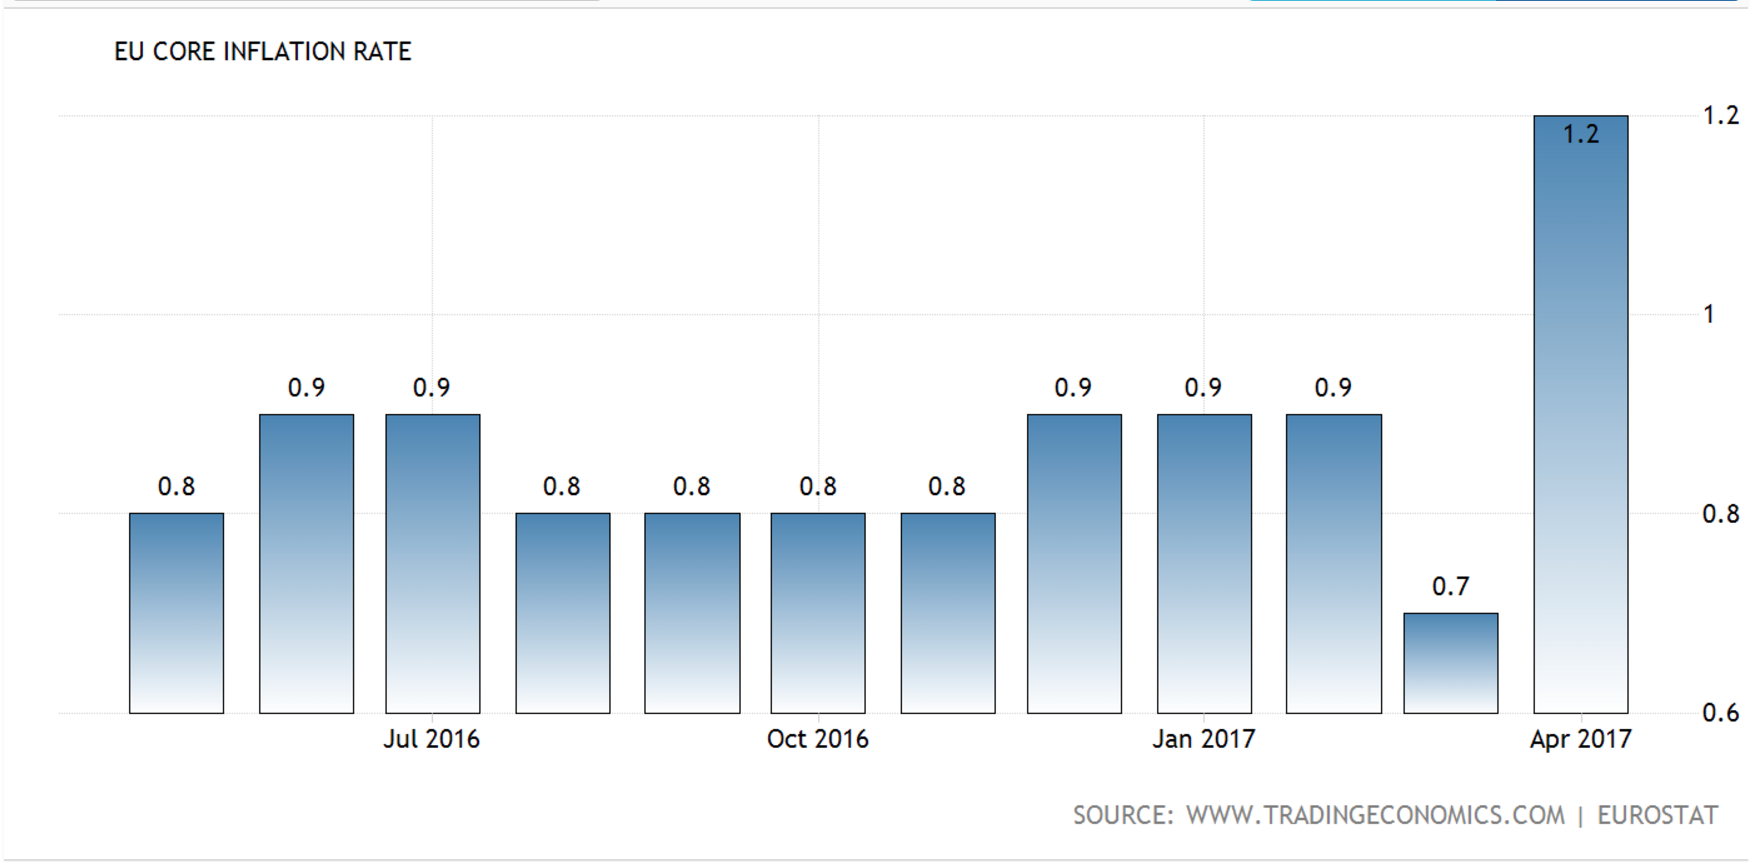 EU Core Inflation Rate